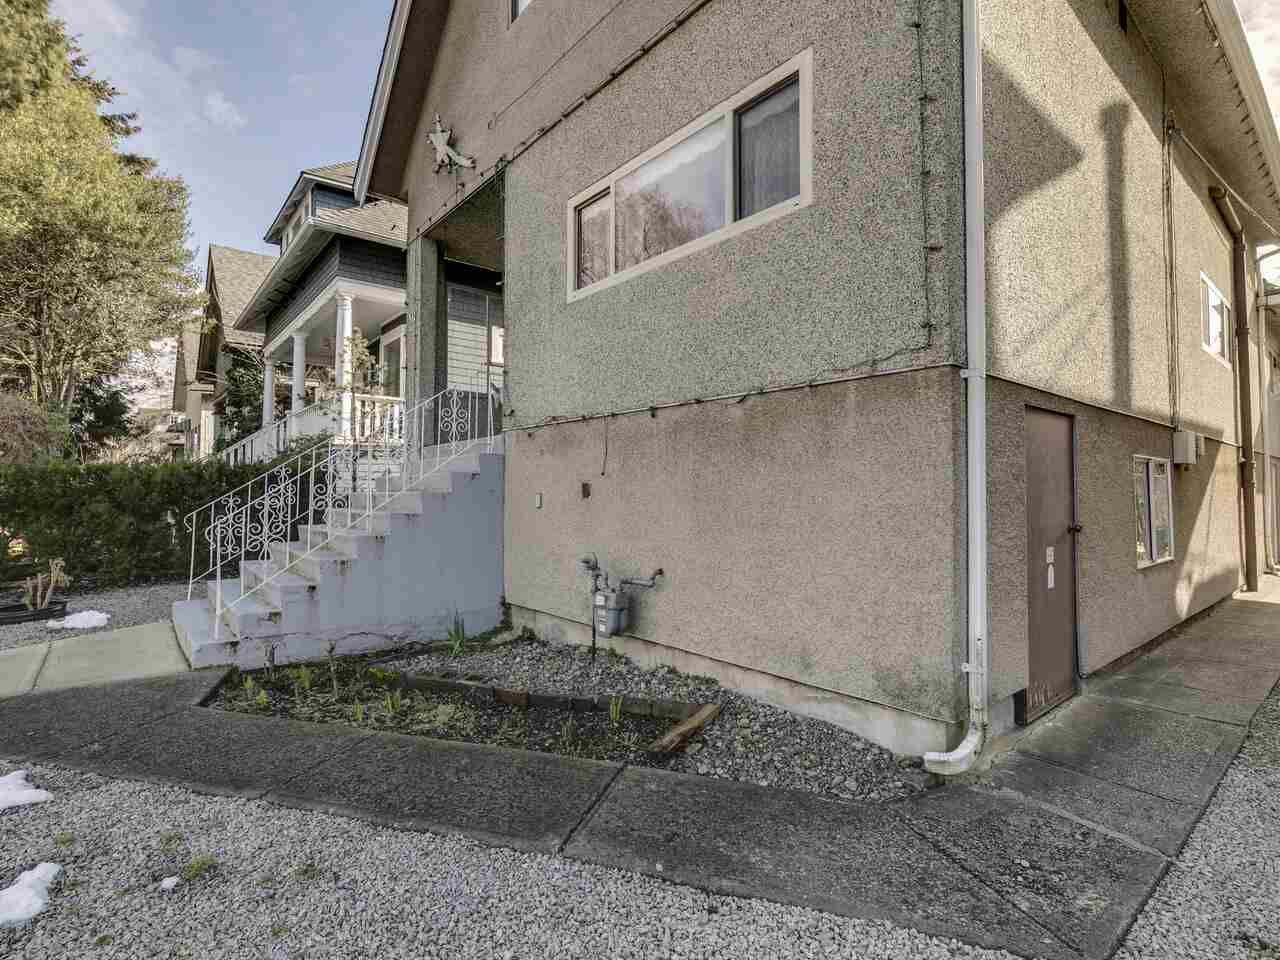 """Photo 2: Photos: 1550 GRANT Street in Vancouver: Grandview Woodland House for sale in """"GRANVIEW"""" (Vancouver East)  : MLS®# R2539844"""